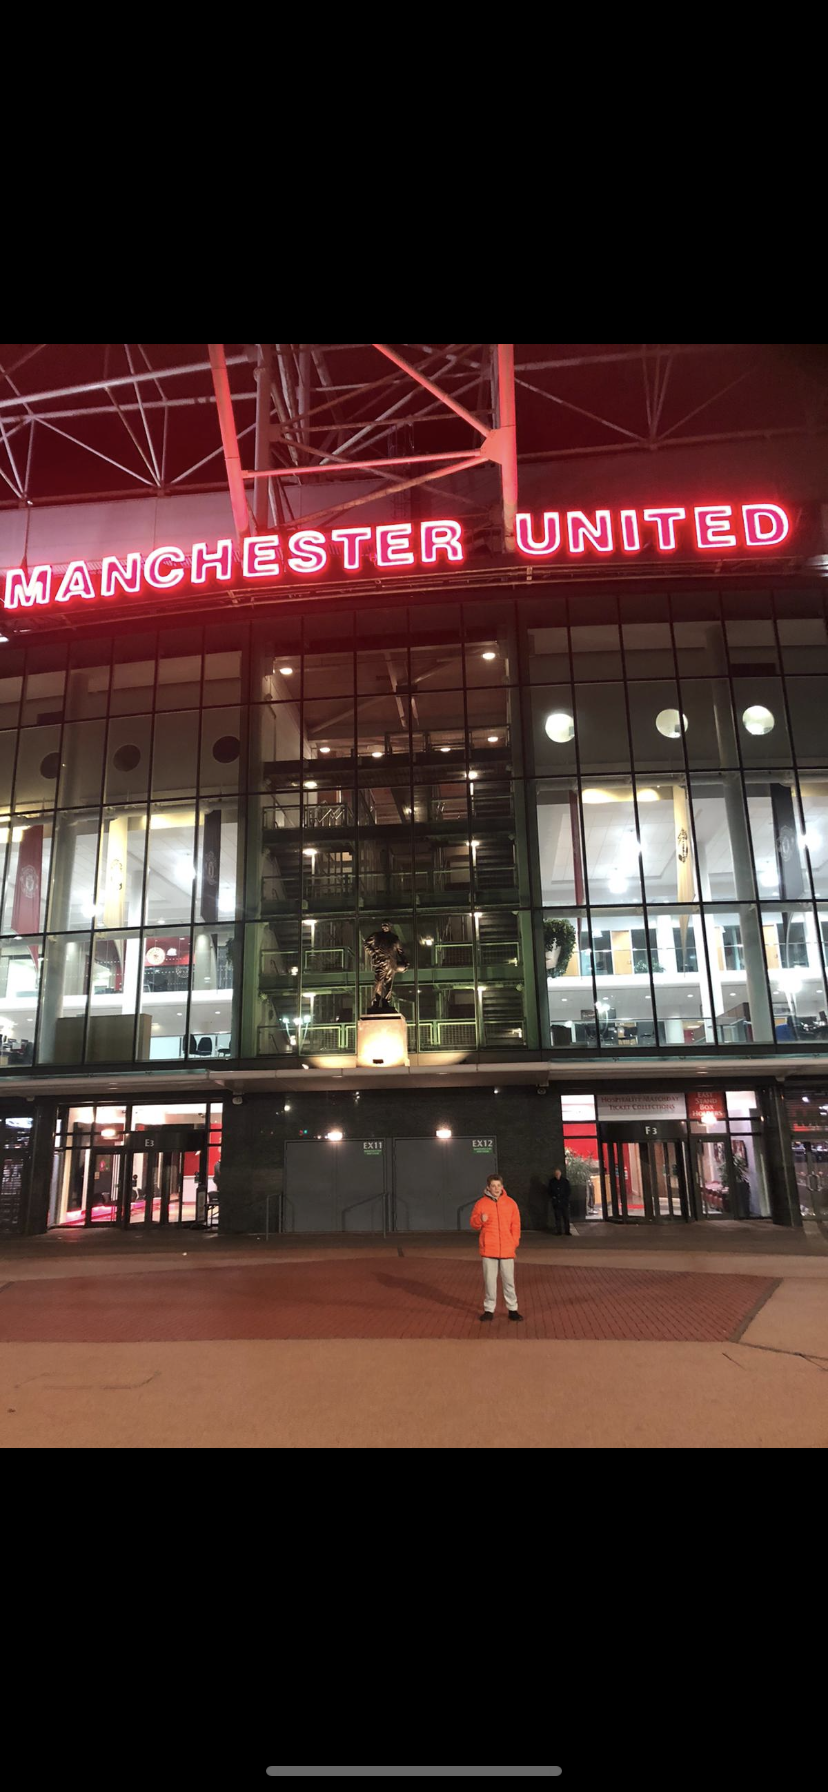 Residential Trip to Old Trafford